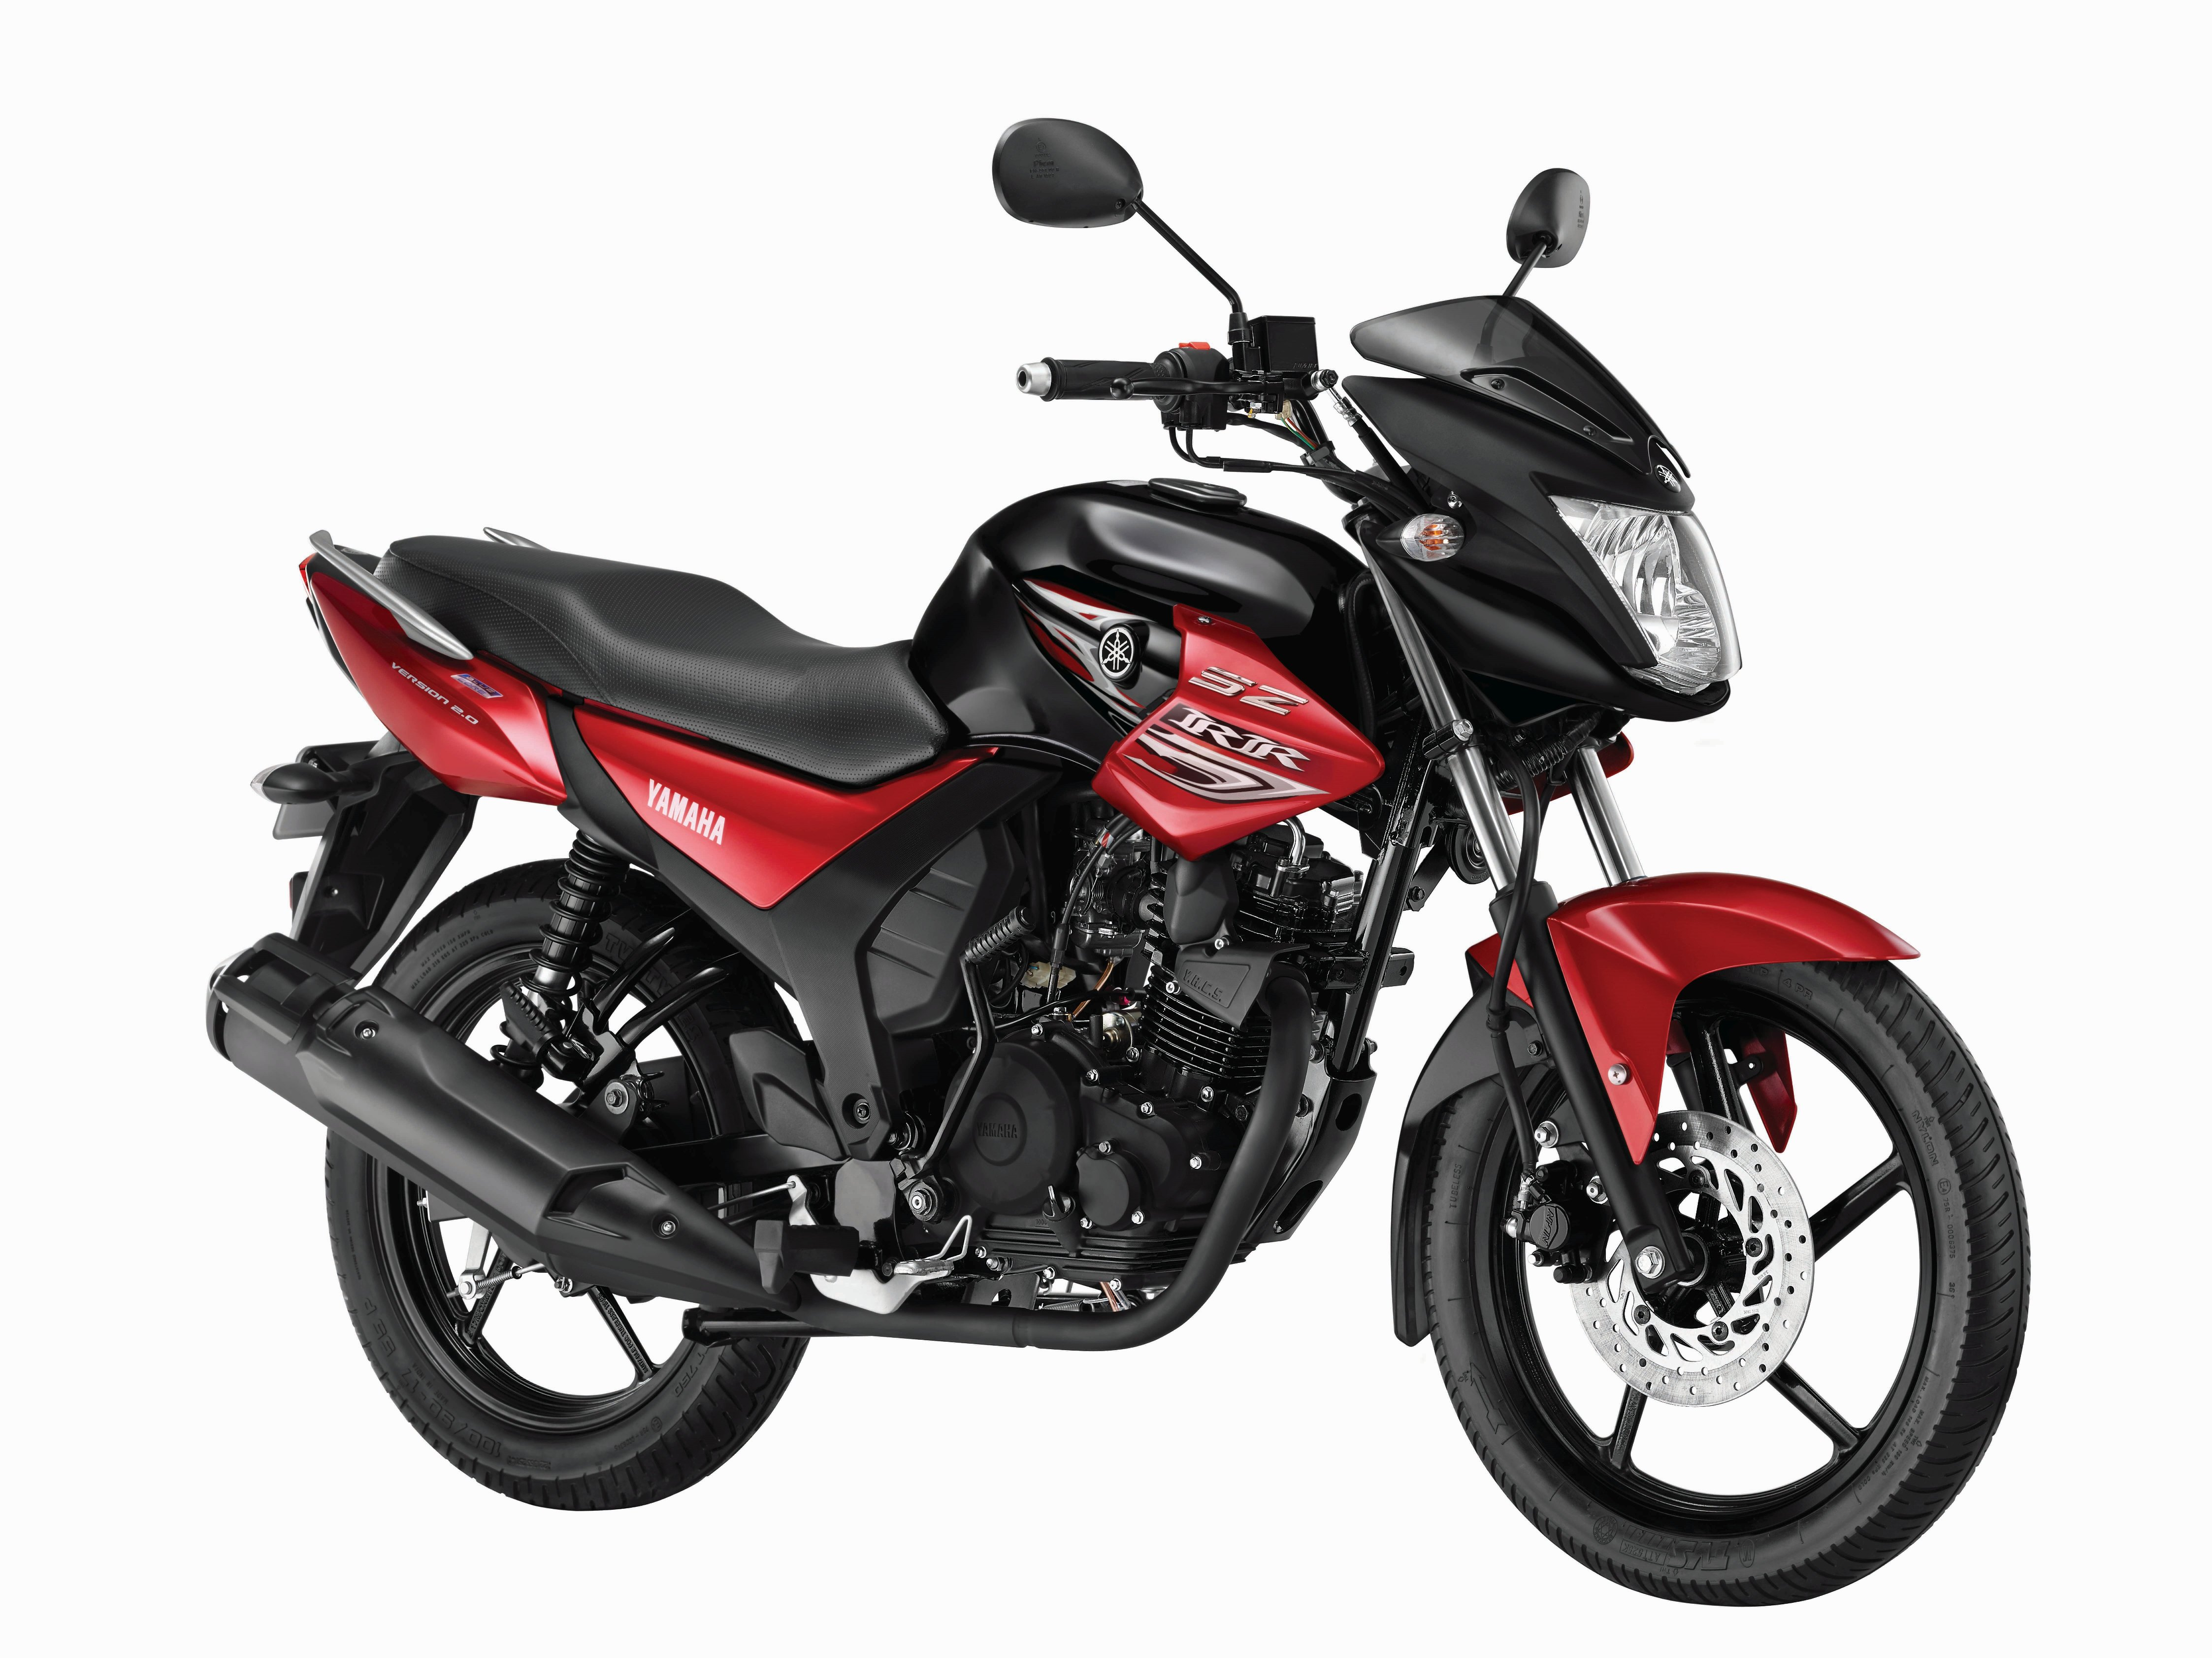 Yamaha Sz Rr Launched At Rs 65 300 Autocar India